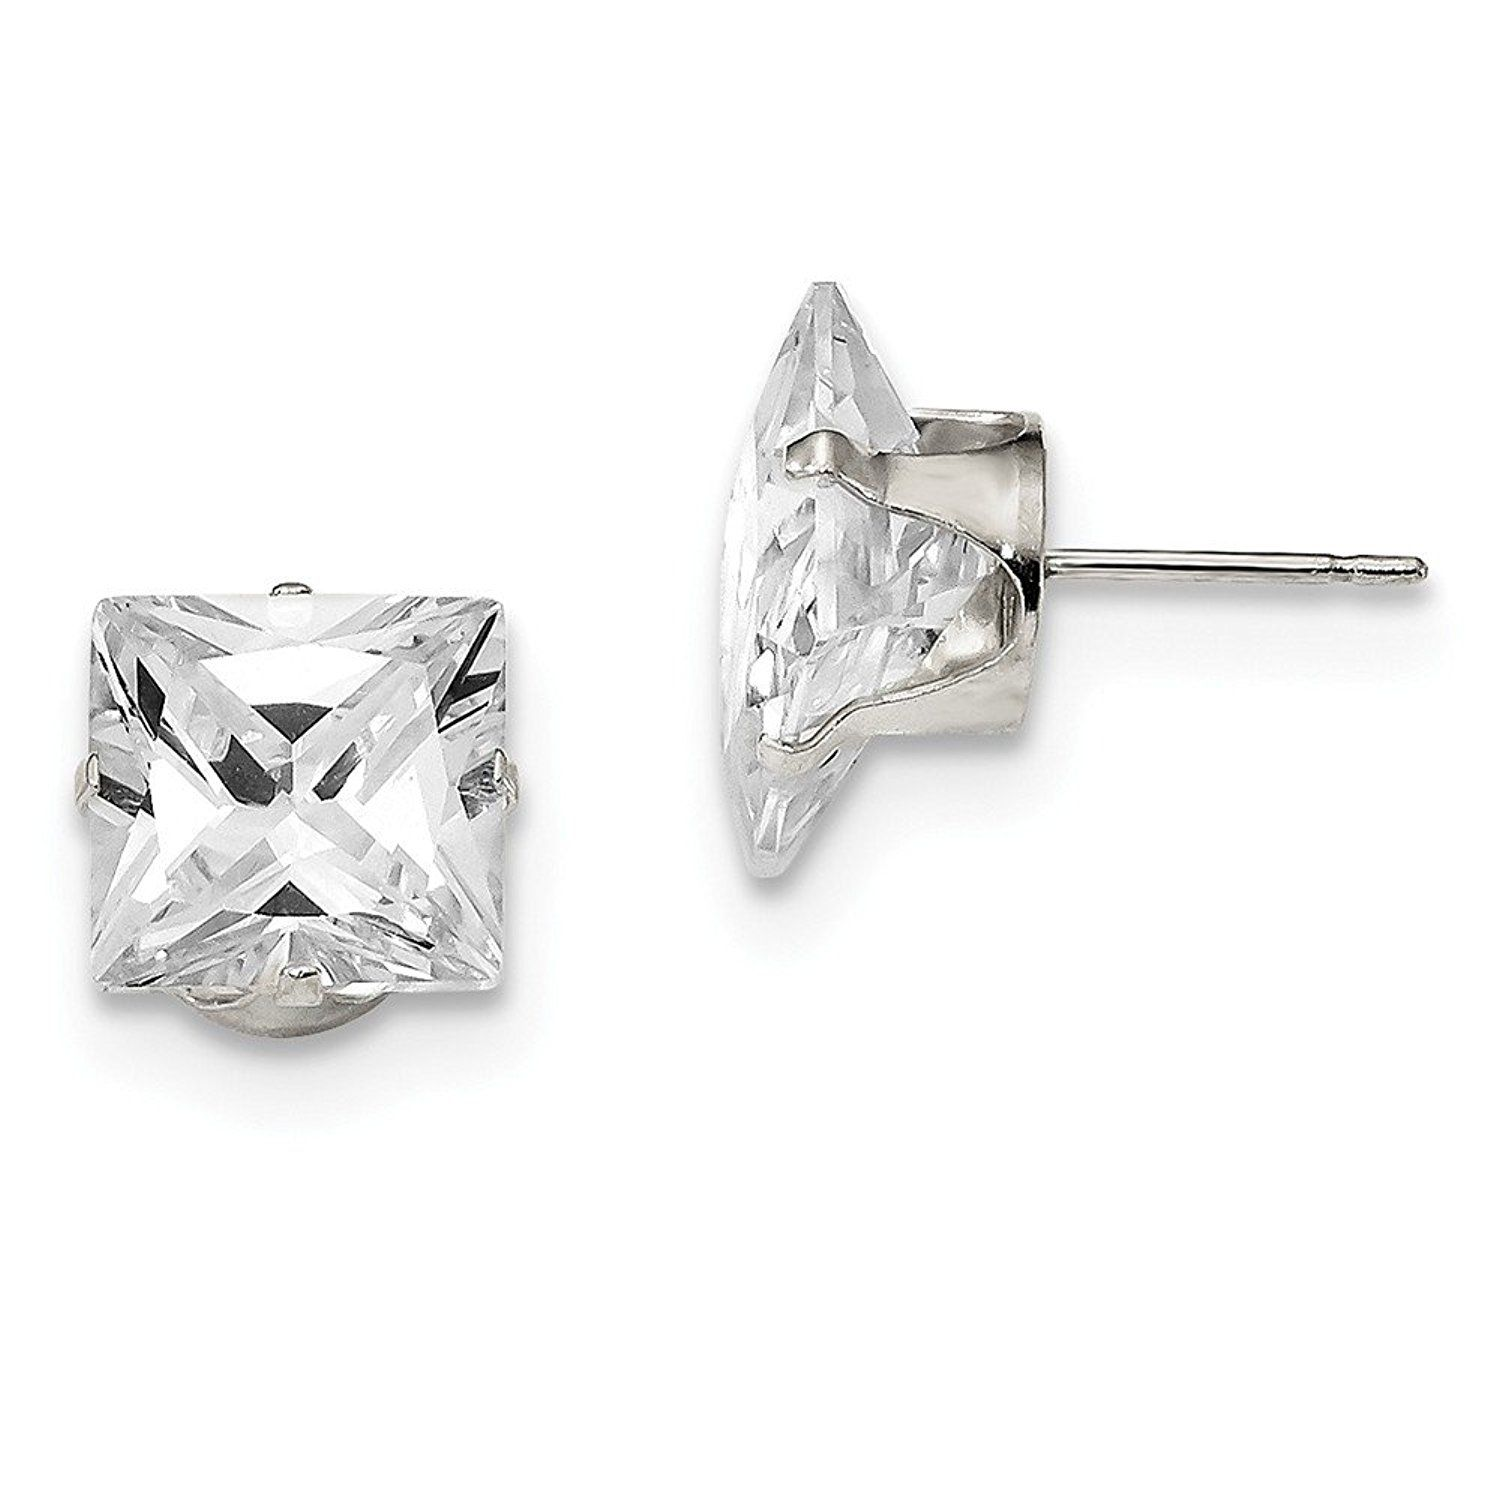 Ice Carats 925 Sterling Silver 10mm Square Cubic Zirconia Cz 4 Prong Stud Ball Button Earrings Radiant Fine Jewelry Gi Square Cz Cz Stud Earrings Stud Earrings